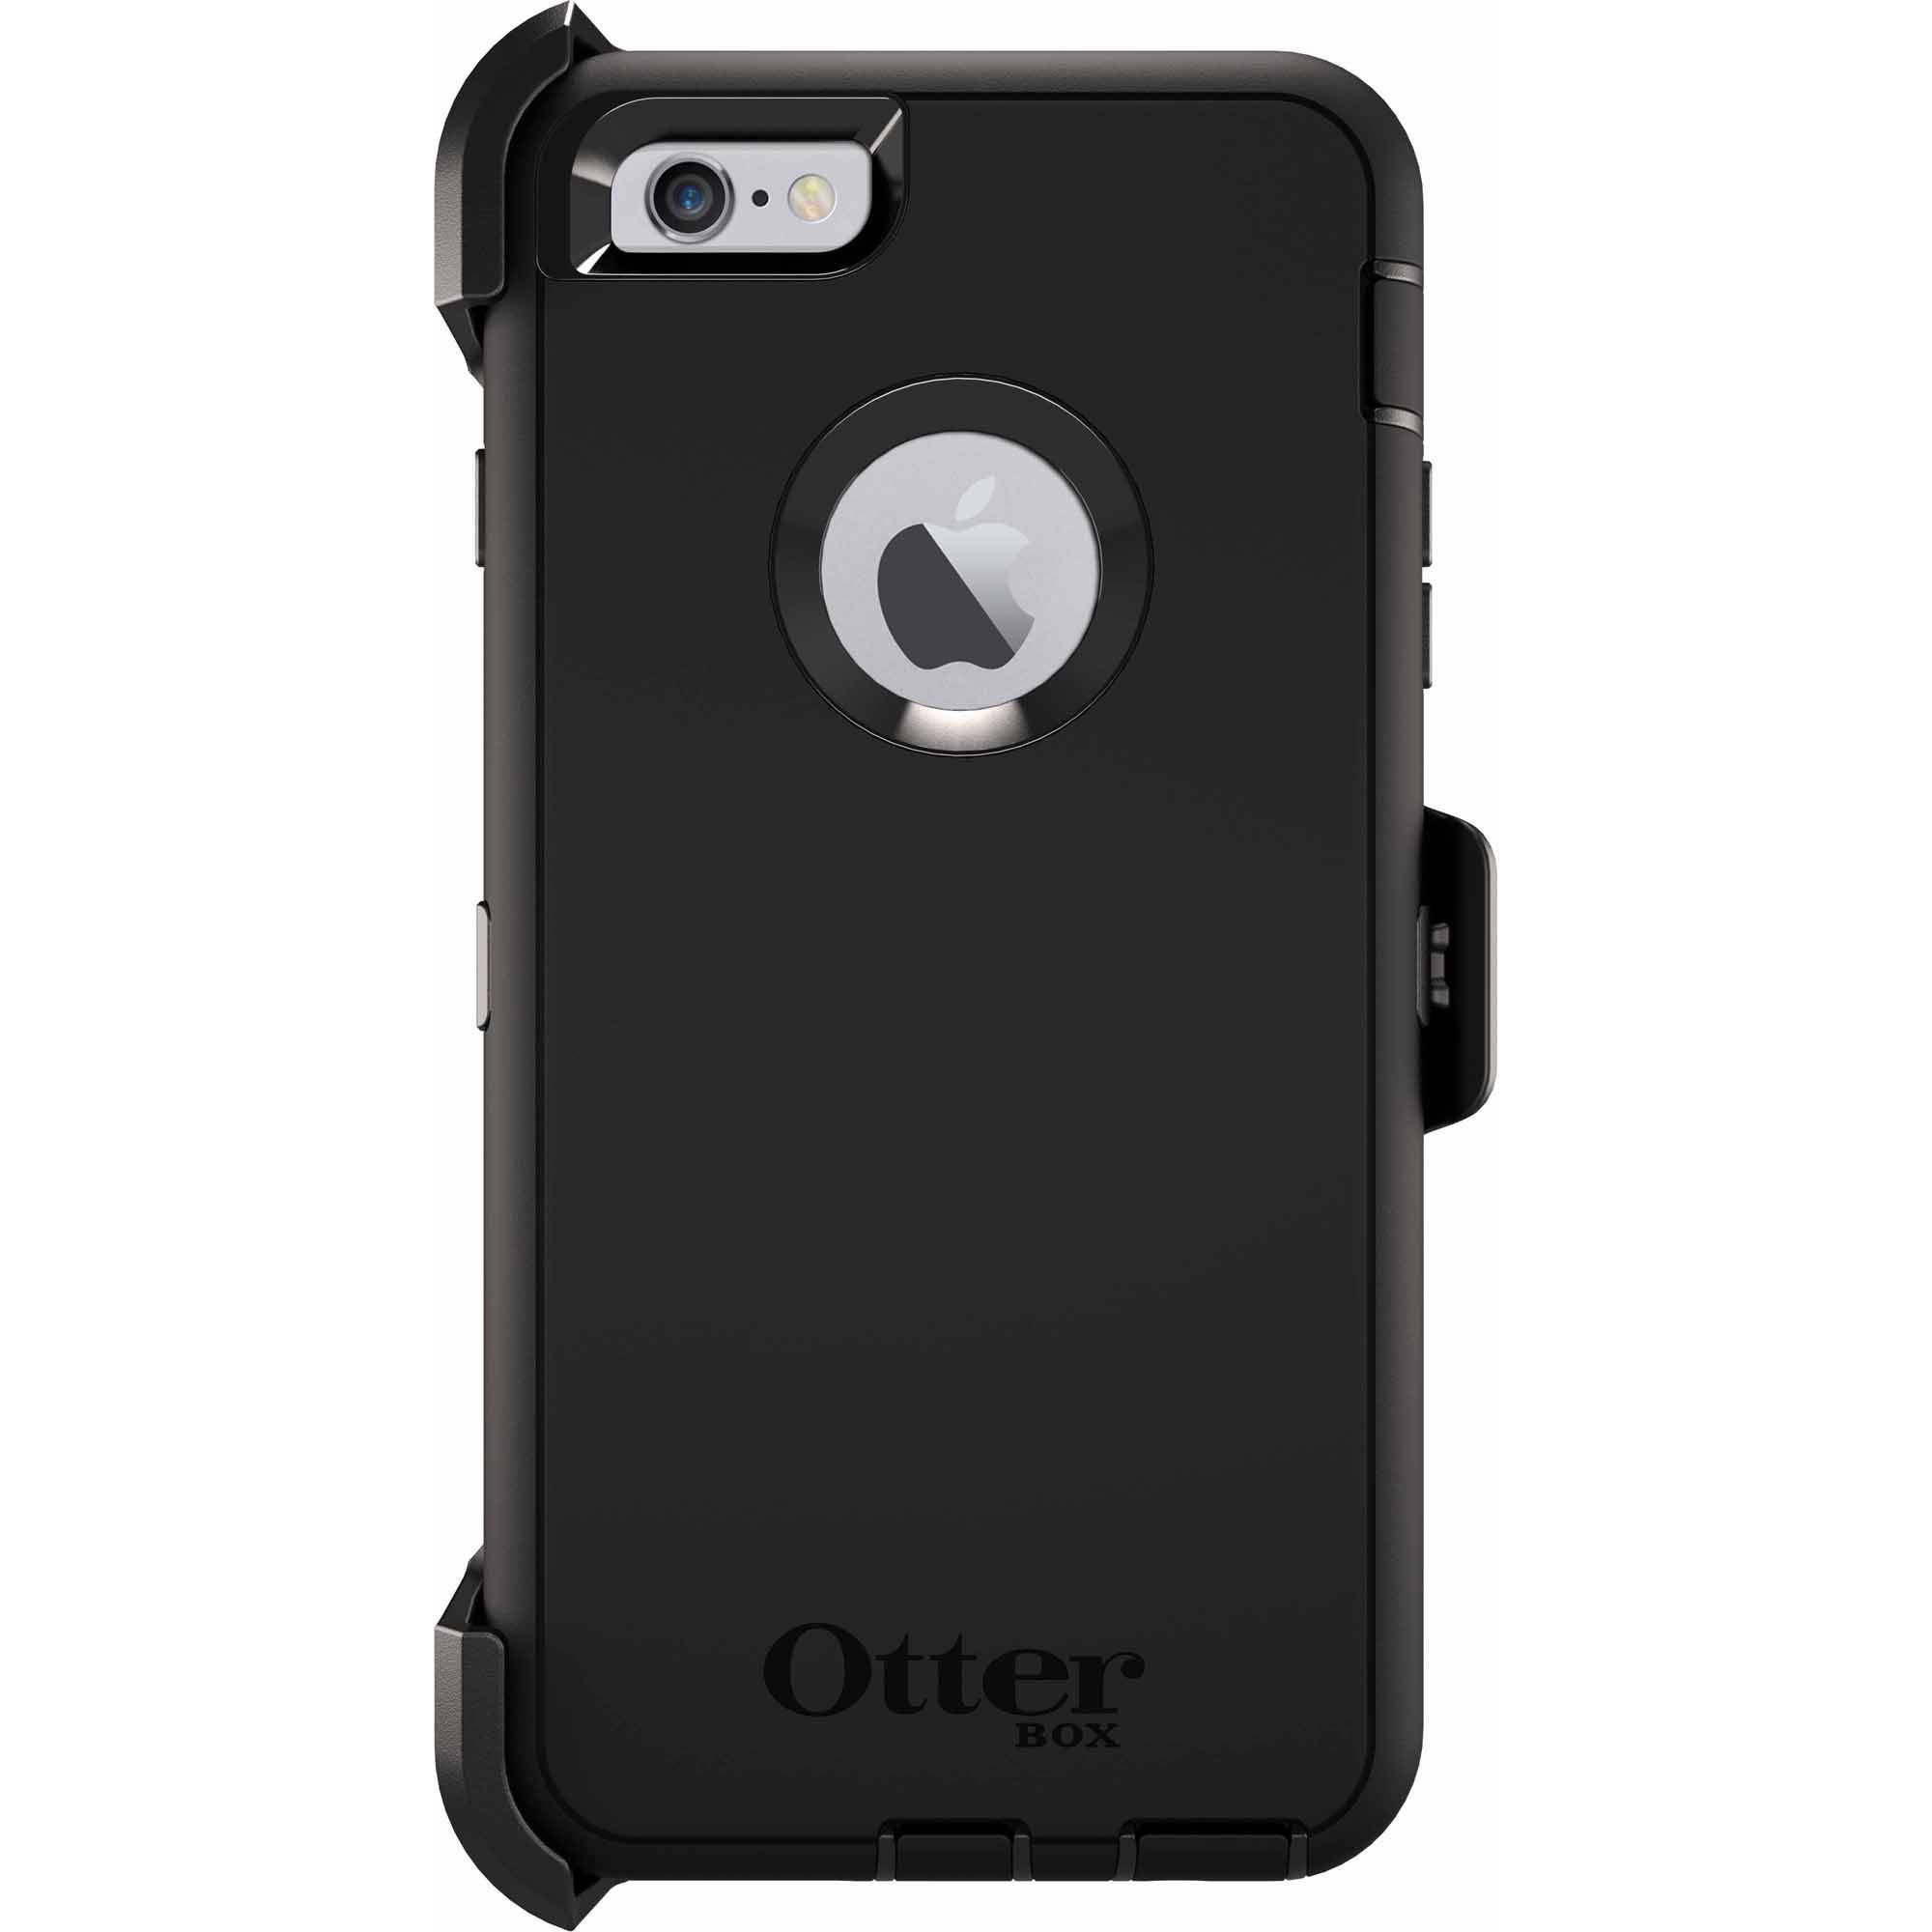 various colors 0d76c c27cc iPhone 6 plus/6s plus Otterbox defender case, Black - Walmart.com